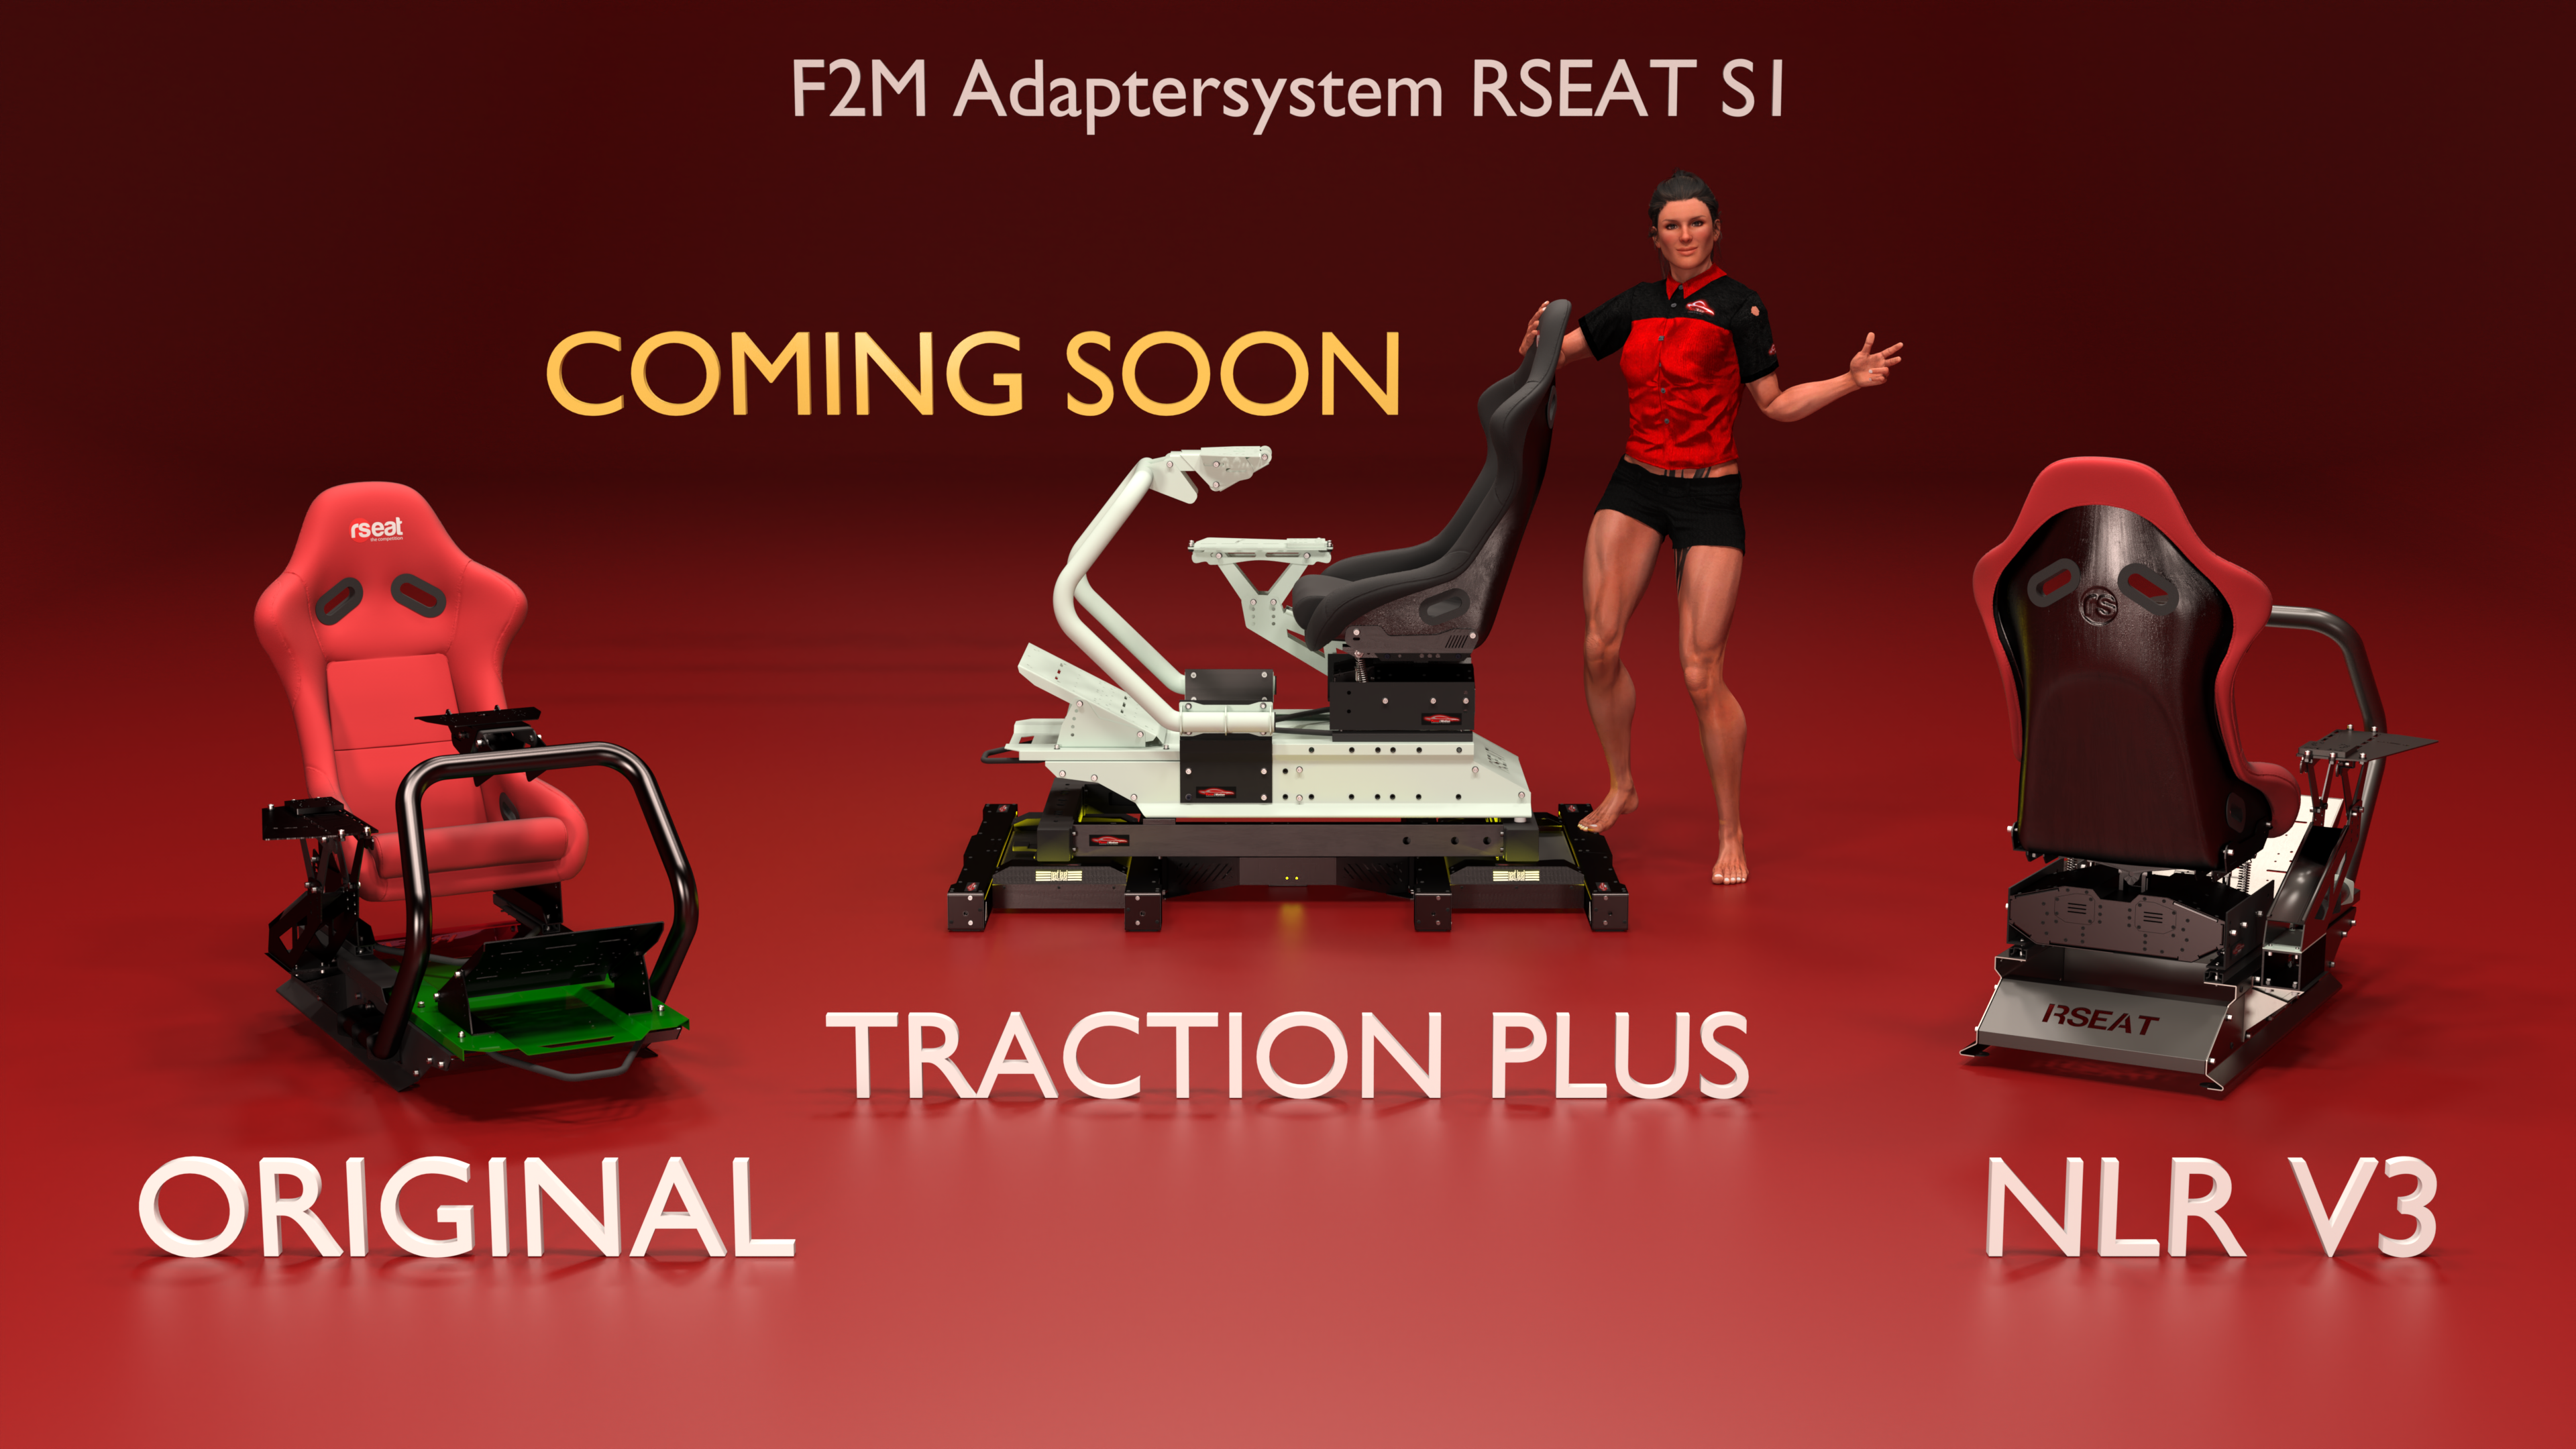 F2M Adaptersystem RSEAT S1